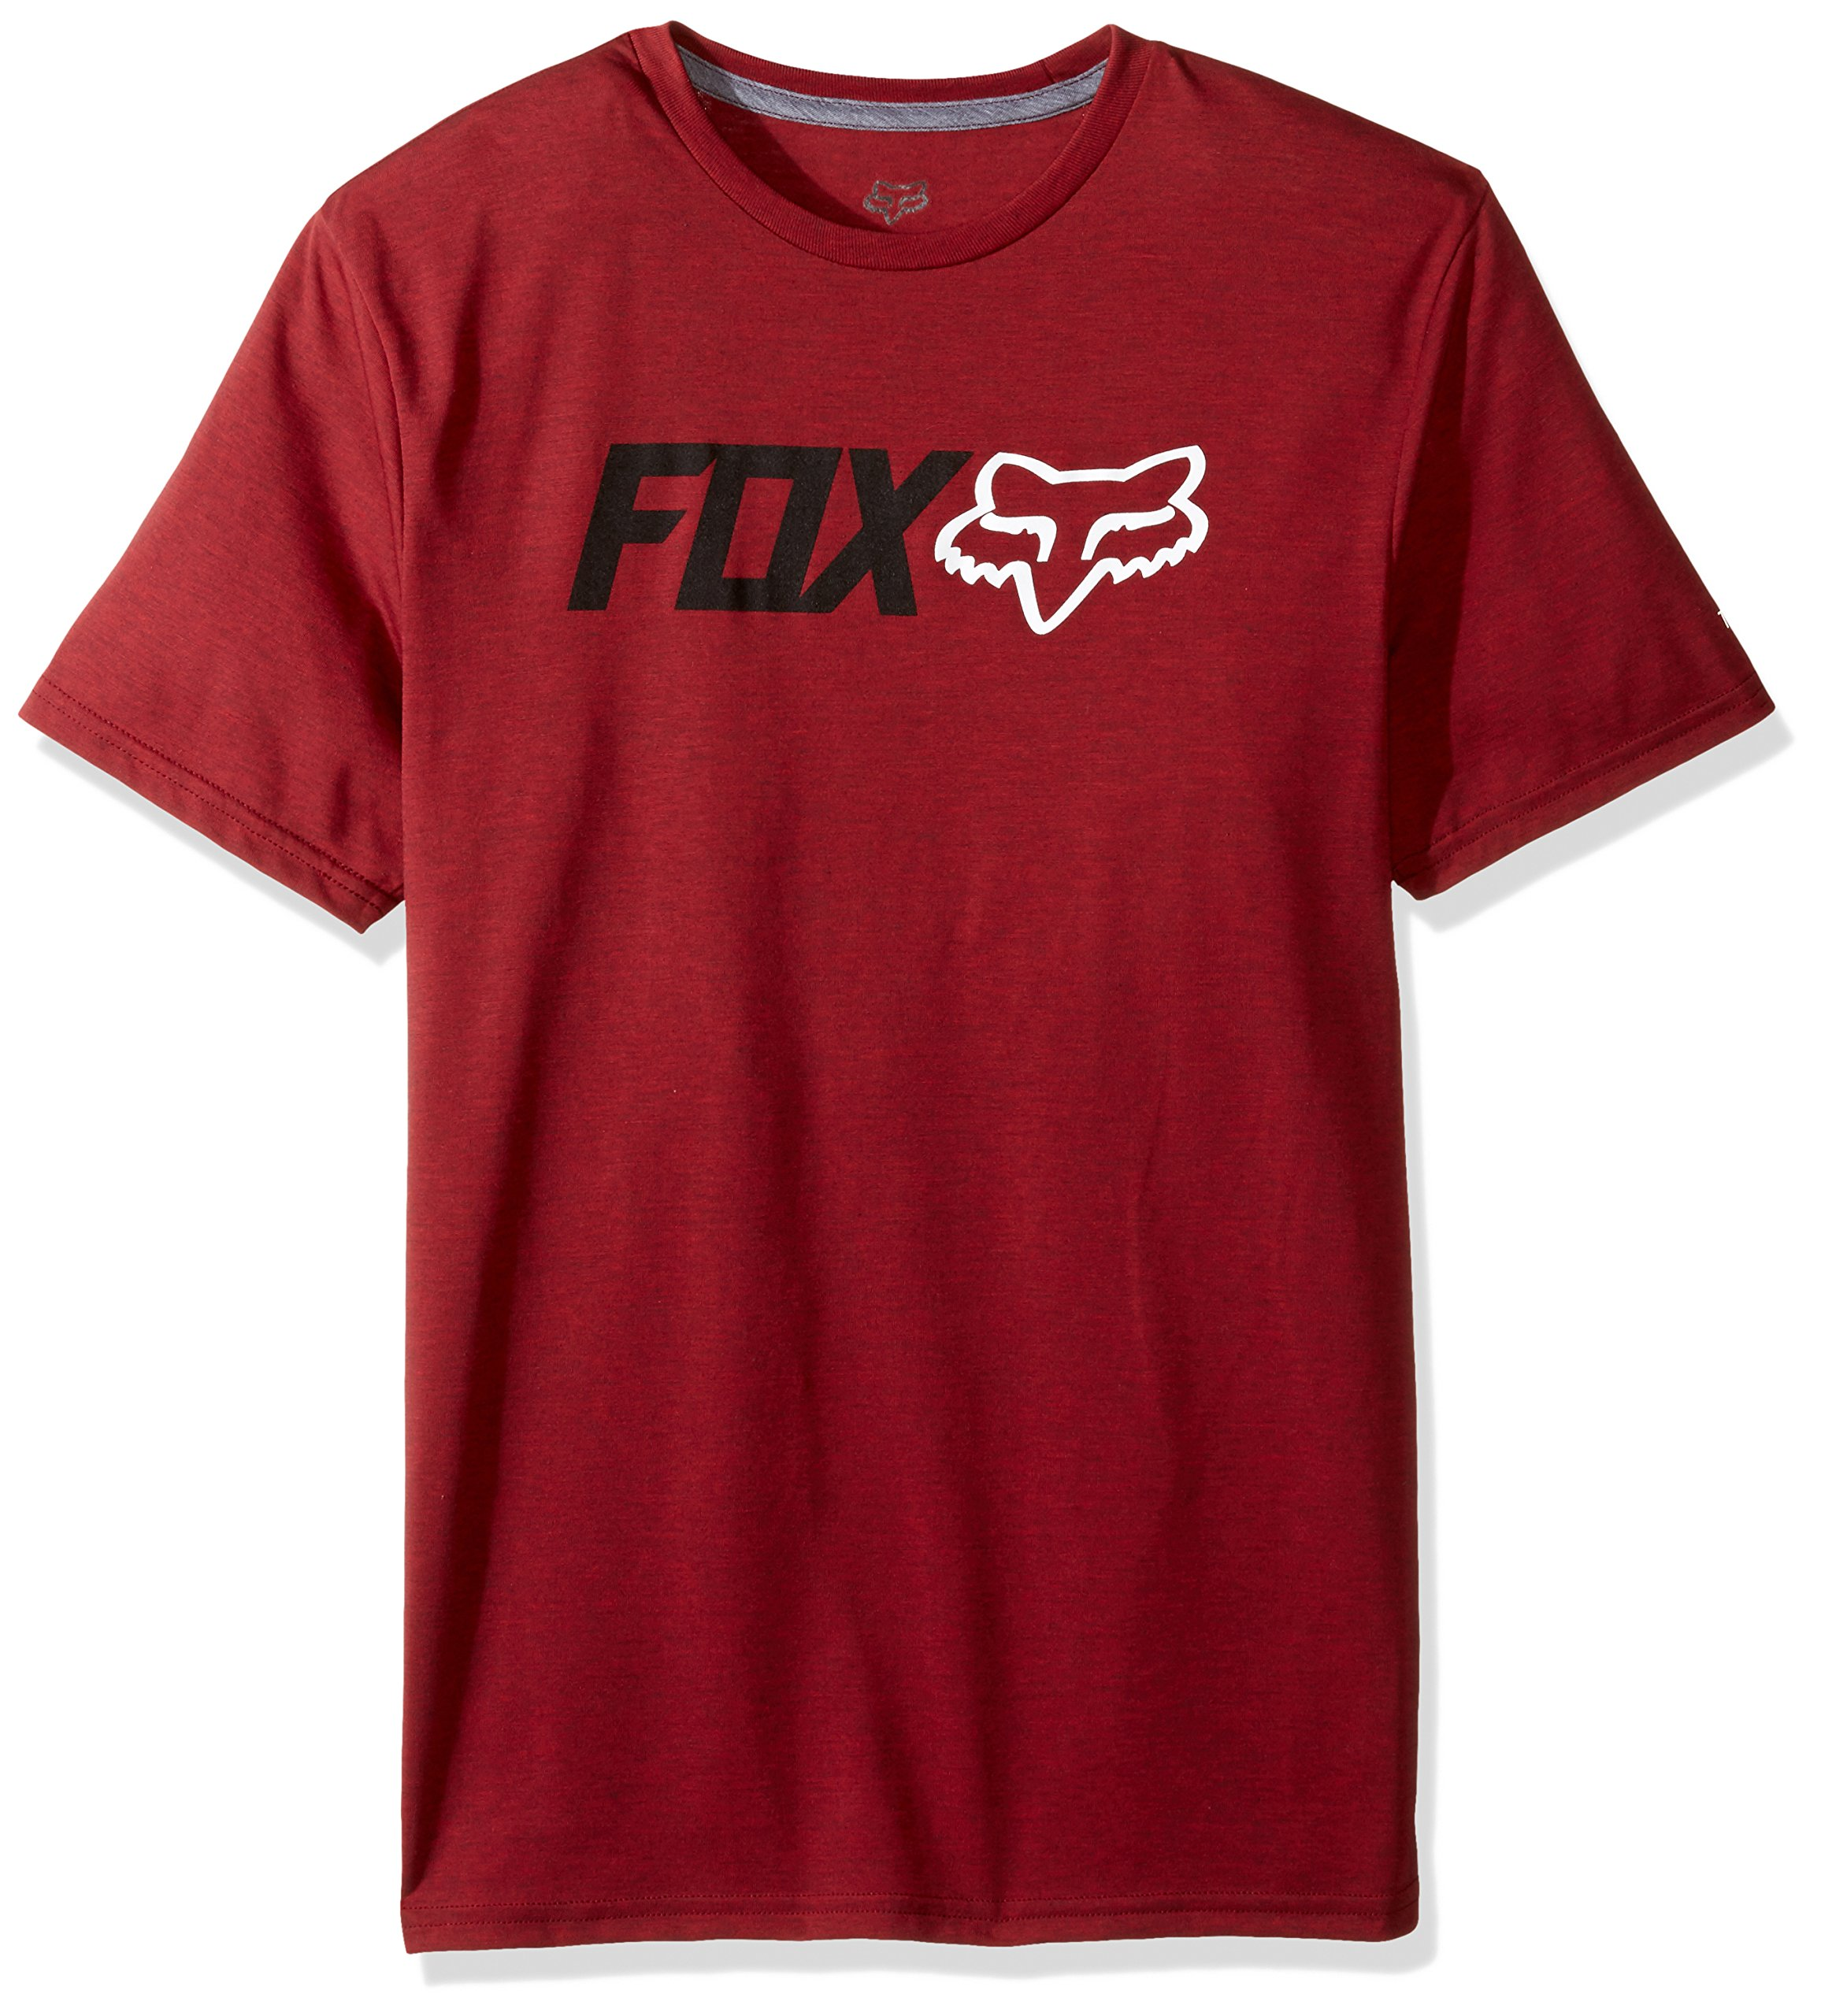 Fox Men's Obsessed Short Sleeve Trudri Tech Tee, Heather Red, Small